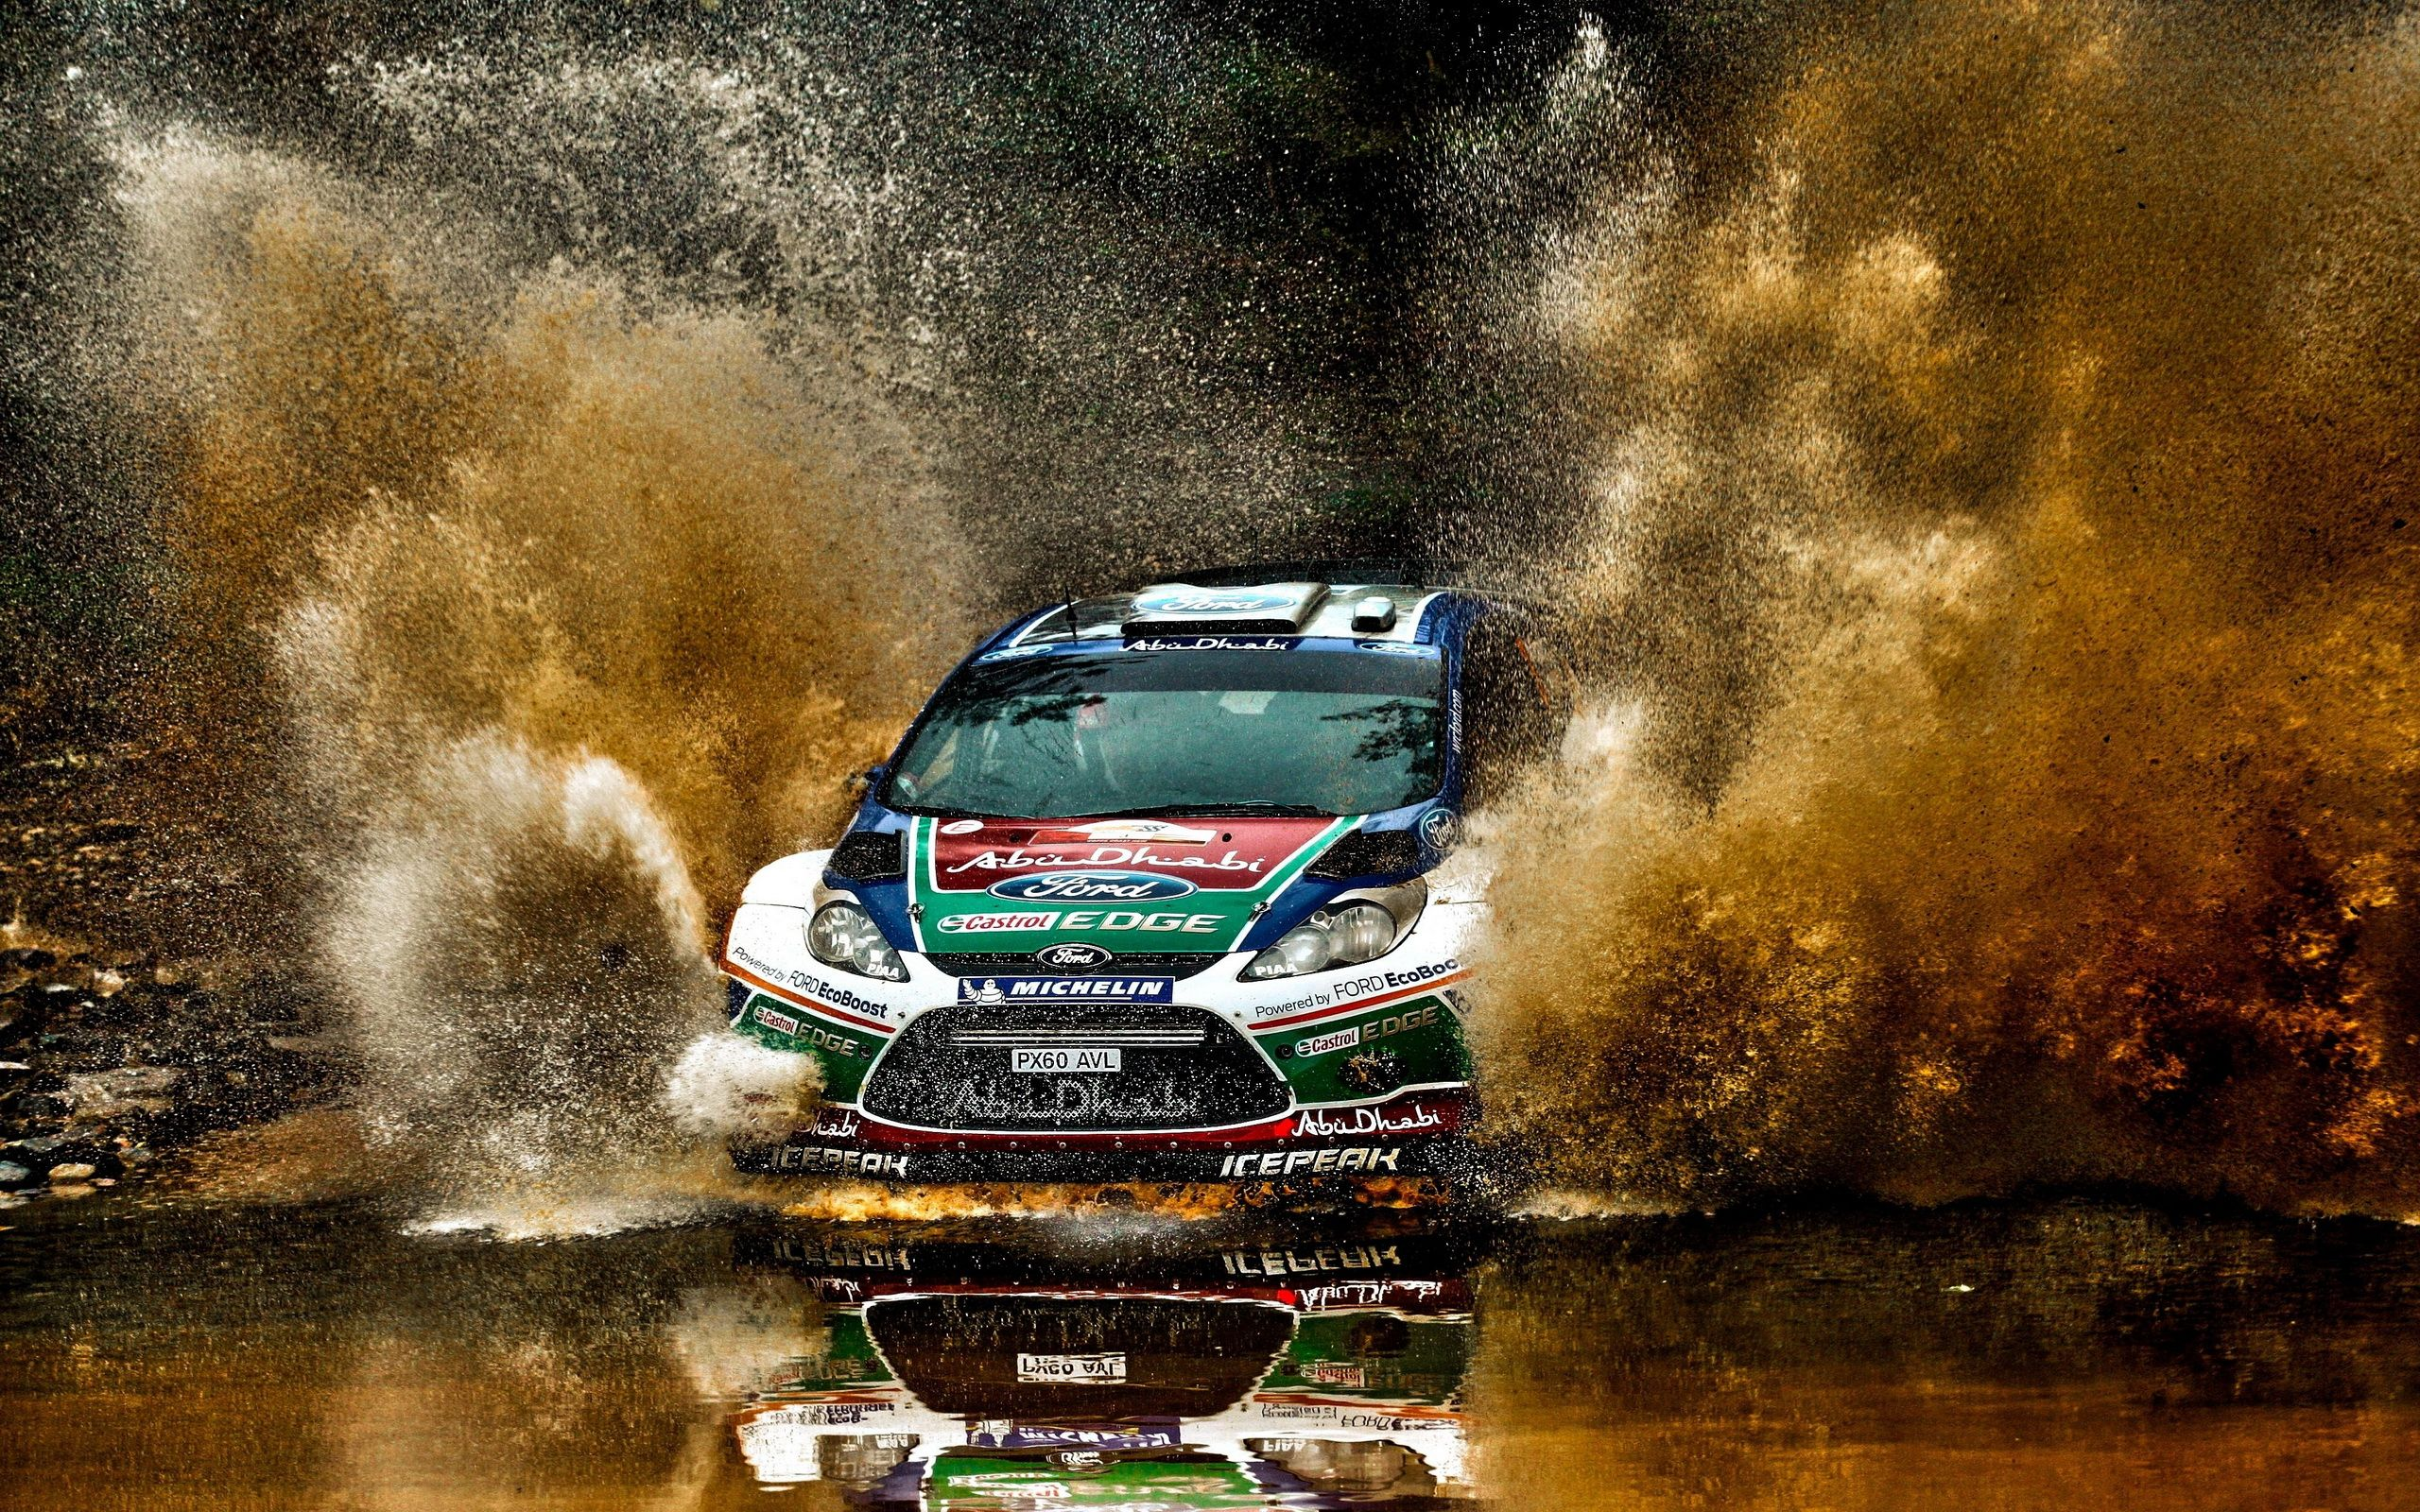 2560x1600 - Rallying Wallpapers 11